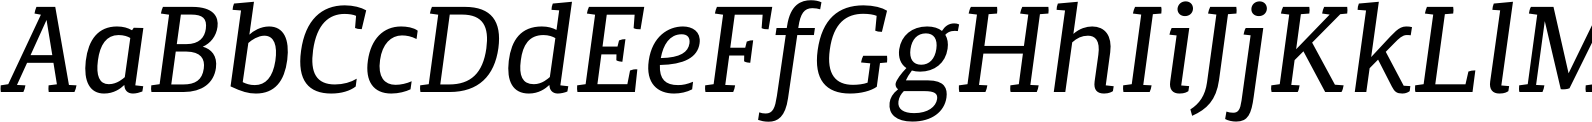 Canberra FY Italic